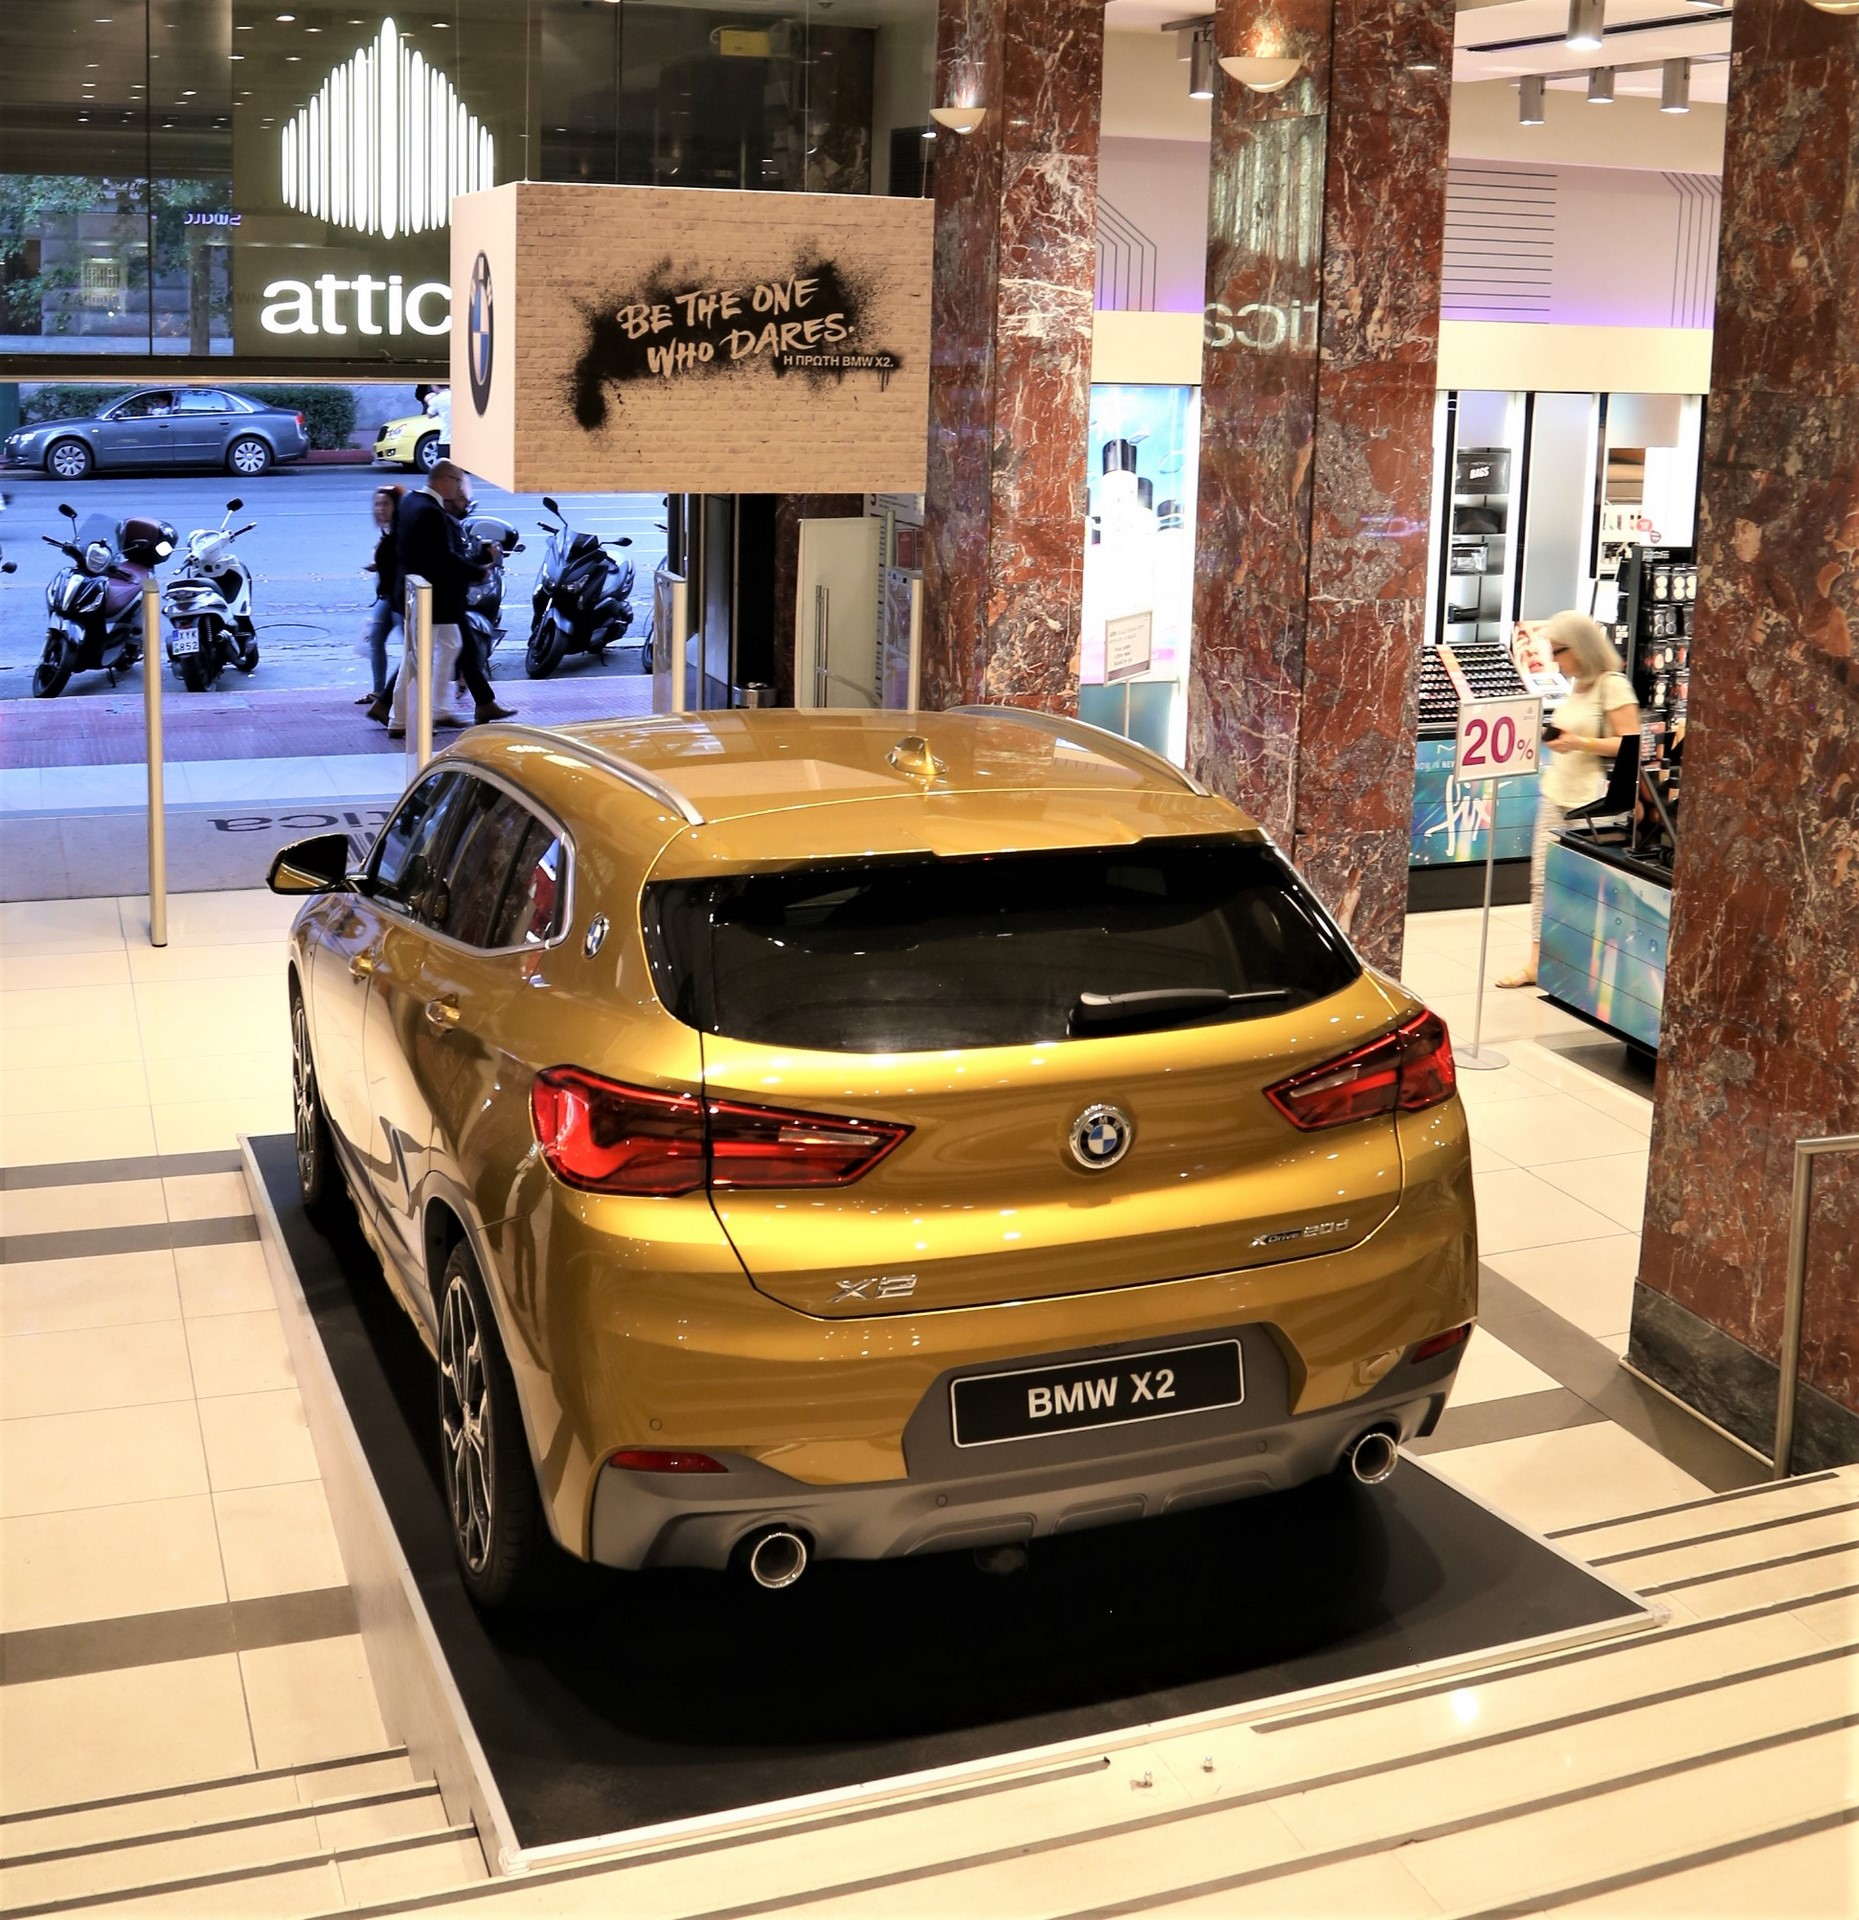 BMW X2 Greek 2018 (20)